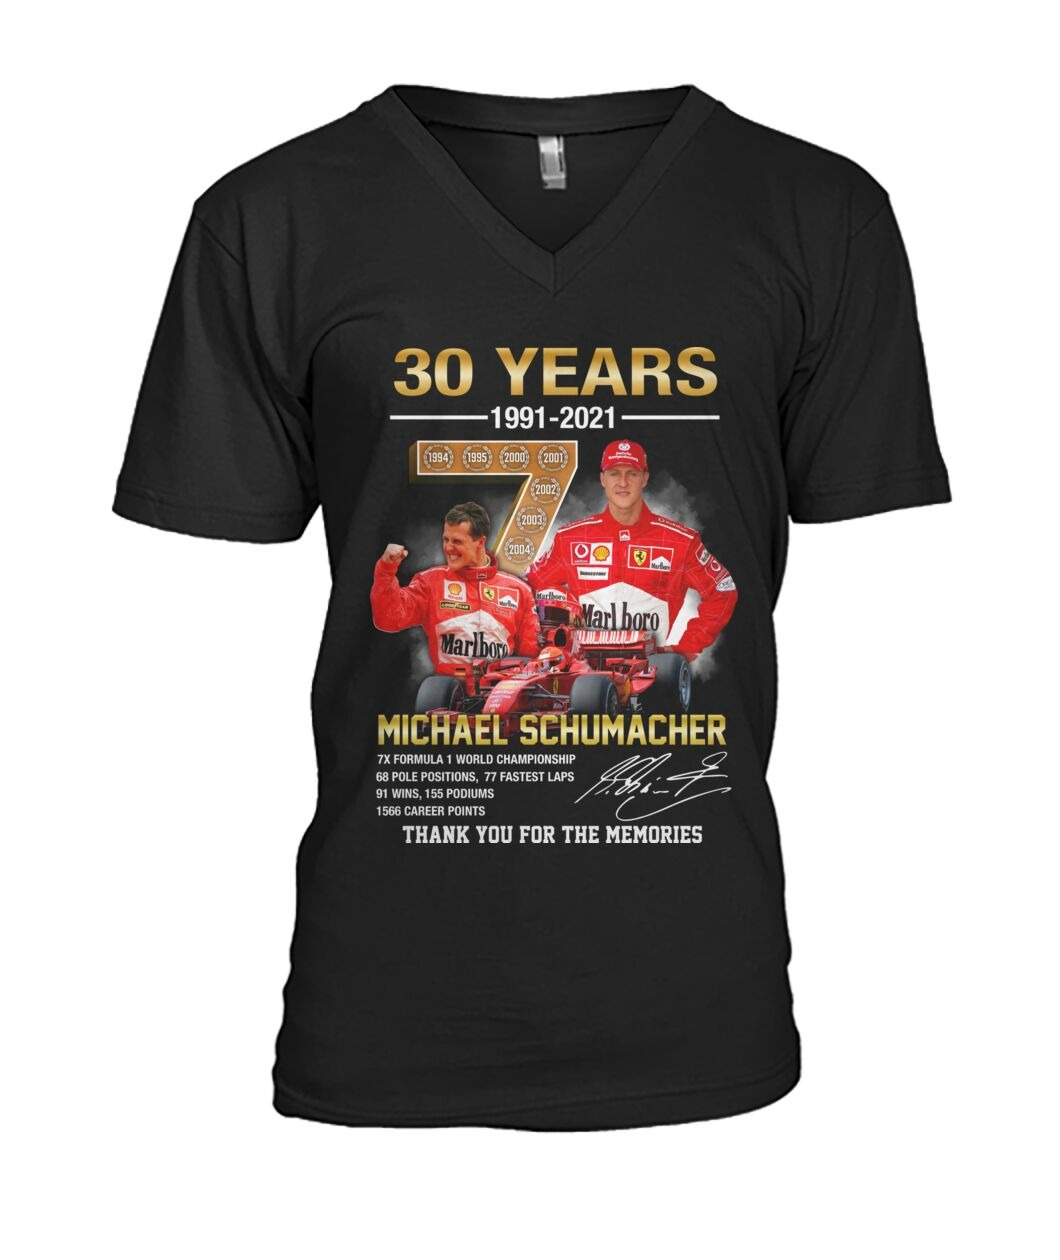 Michael schumacher 30 years thank you for the memories v-neck